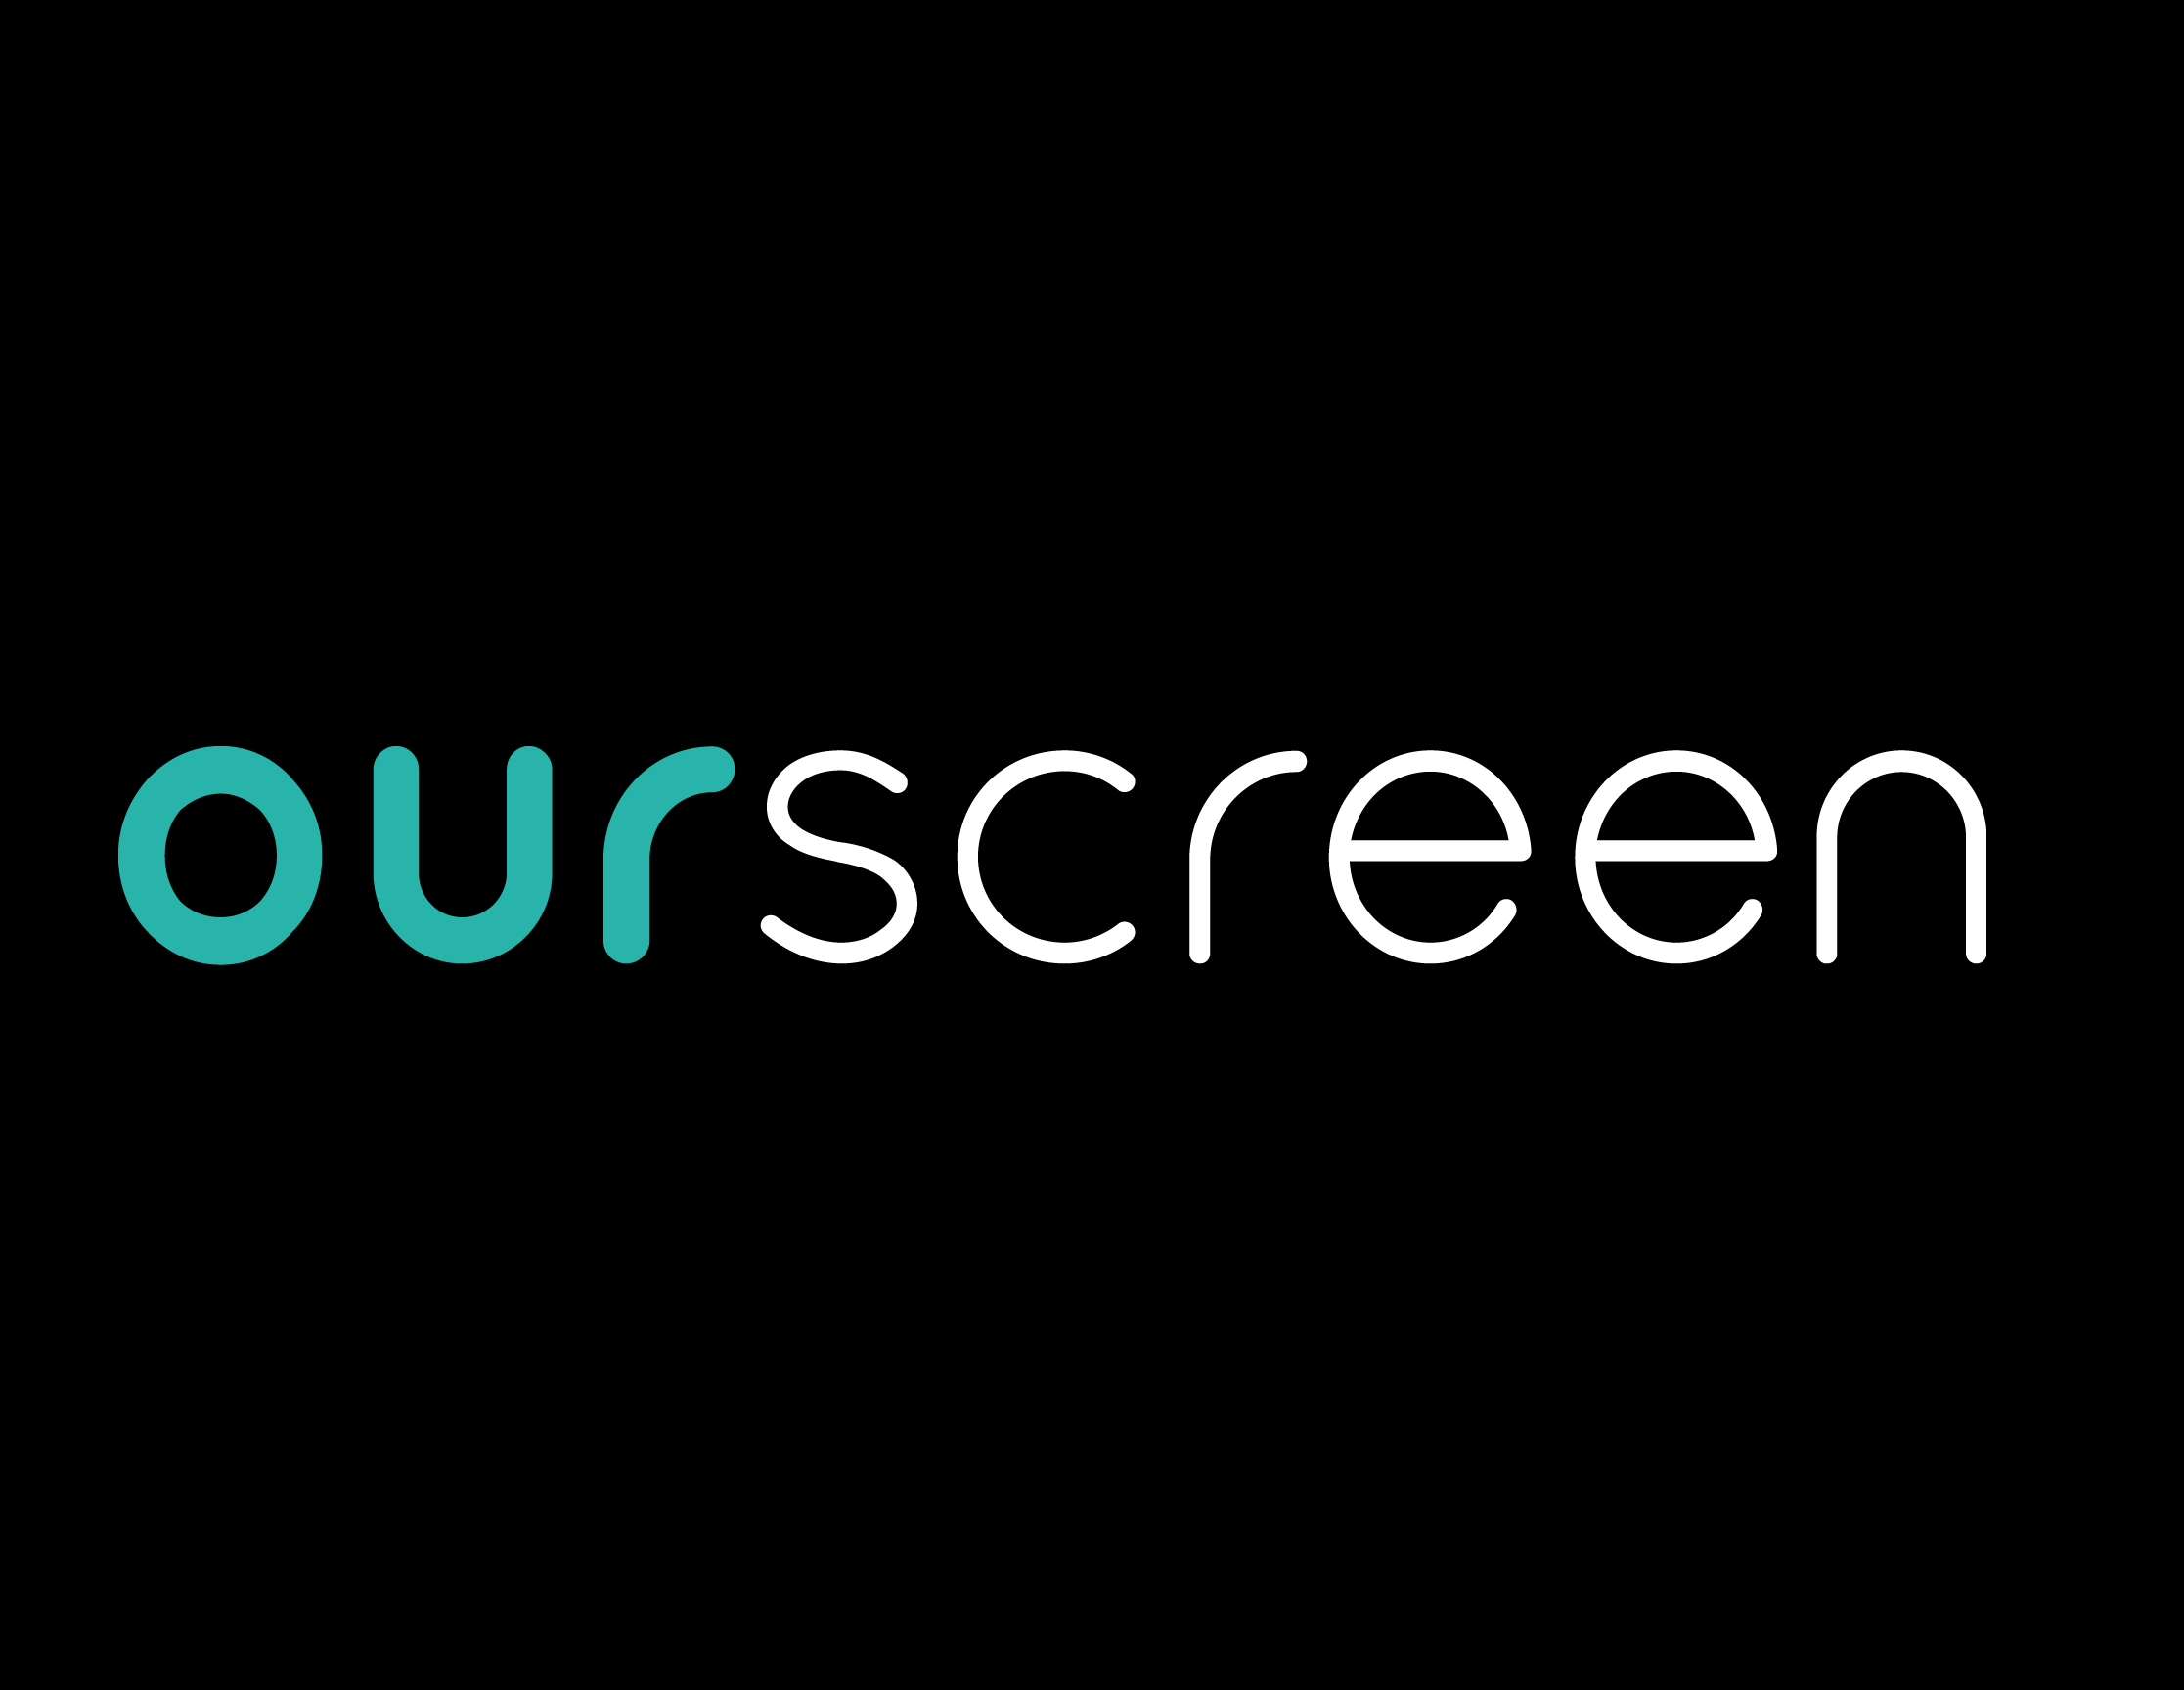 ourscreen.png